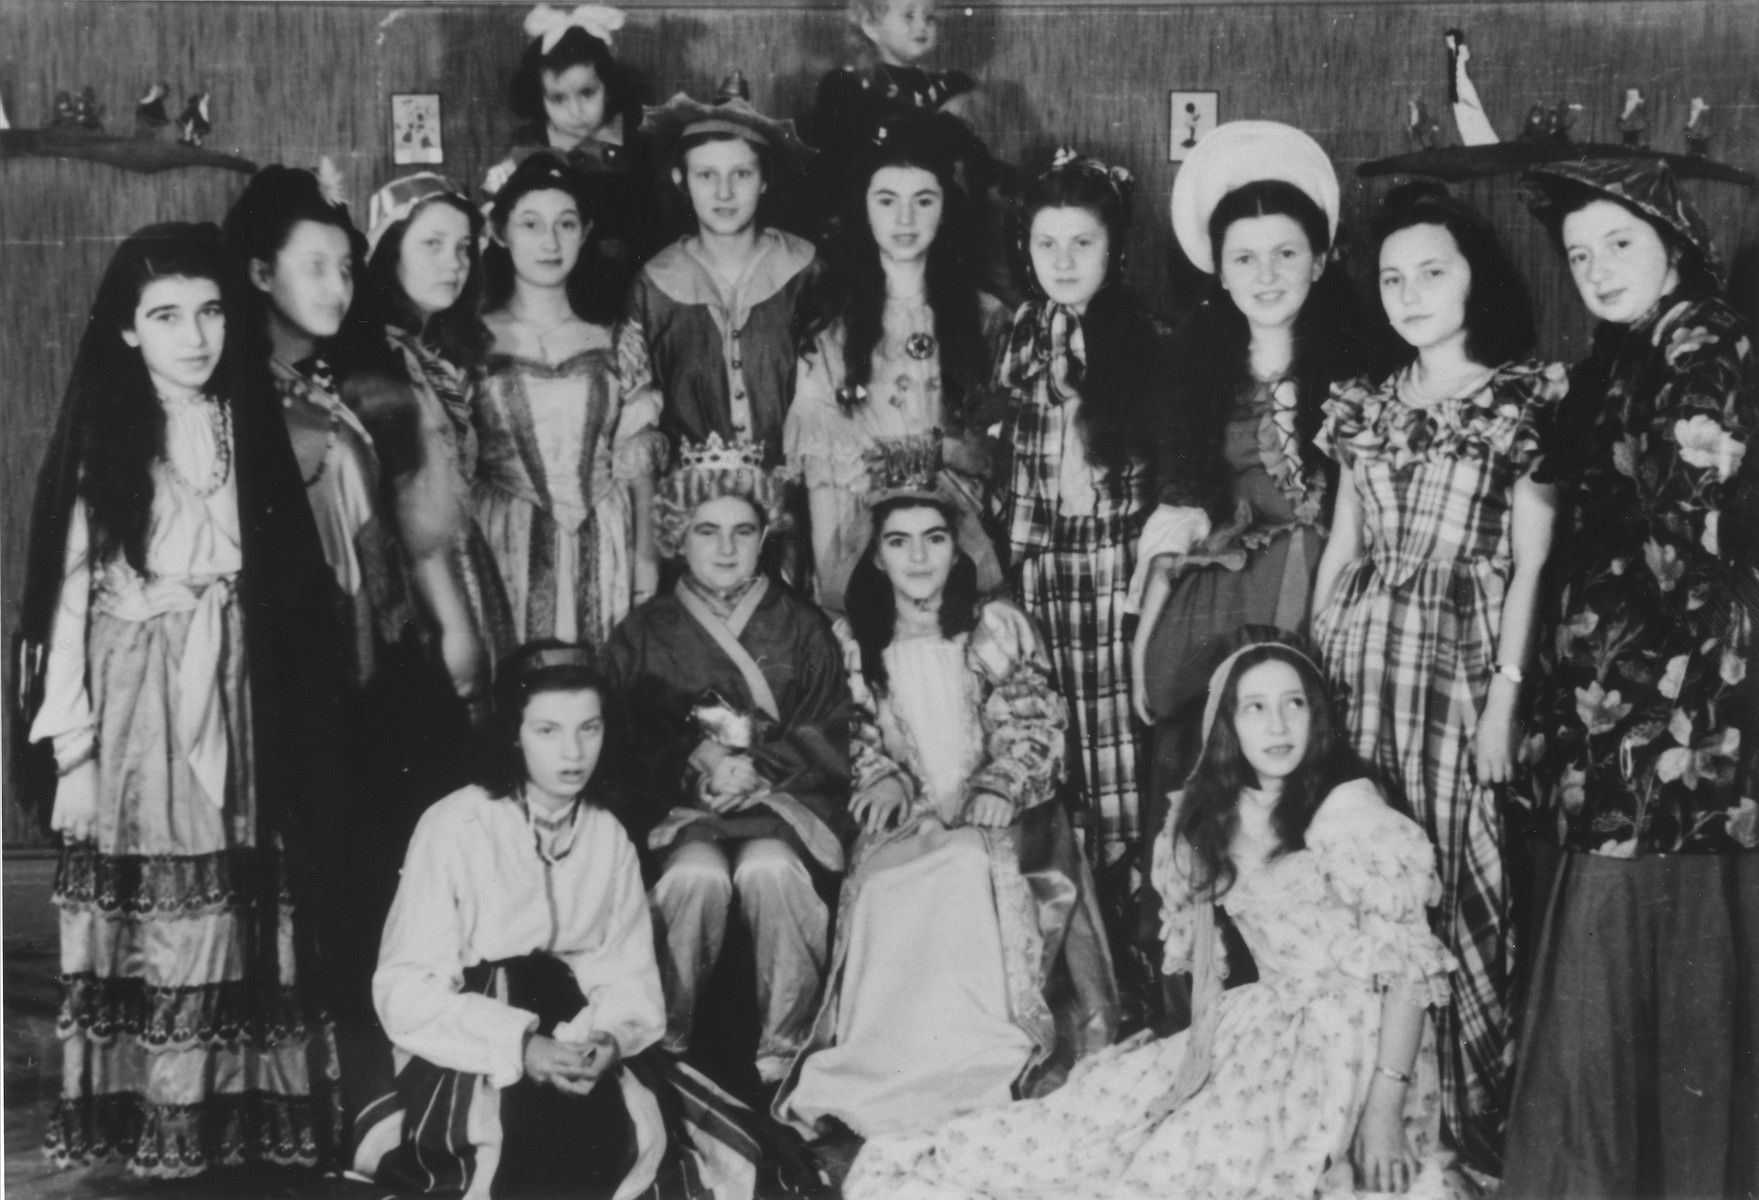 Group portrait of Jewish youth dressed in Purim costume at the Ulm displaced persons camp.  Among those pictured are Yanka Galler, Ruzia Rozen, Lila Rajs and Lila Rozen.